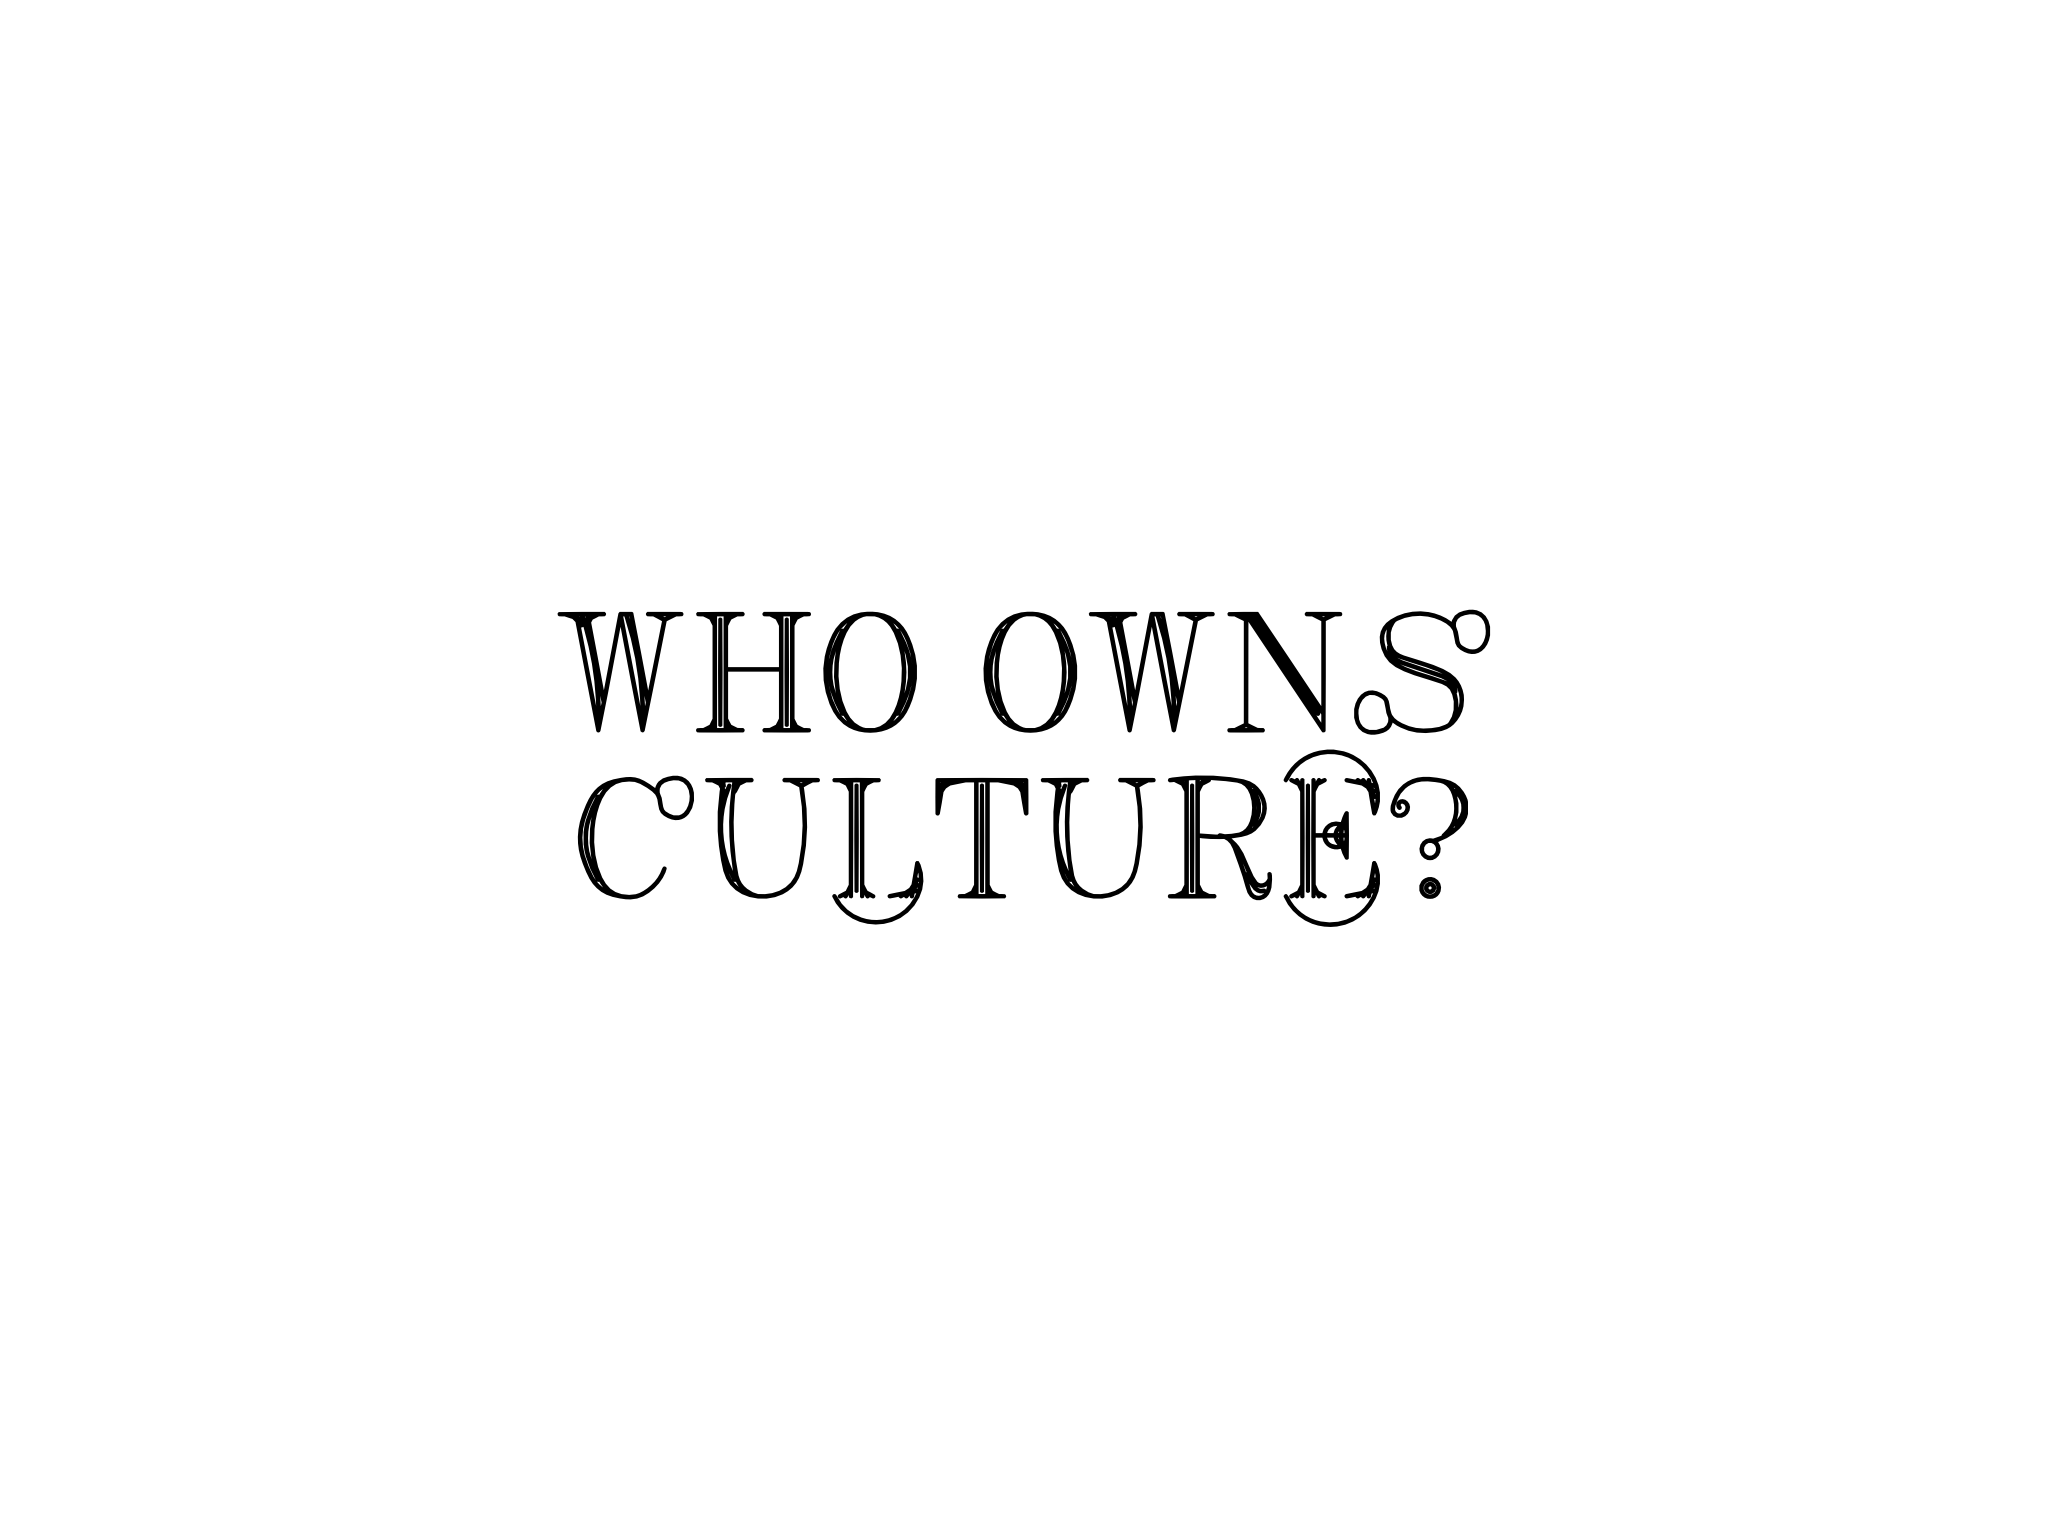 content/images/uploads/txt-who-owns-culture.png